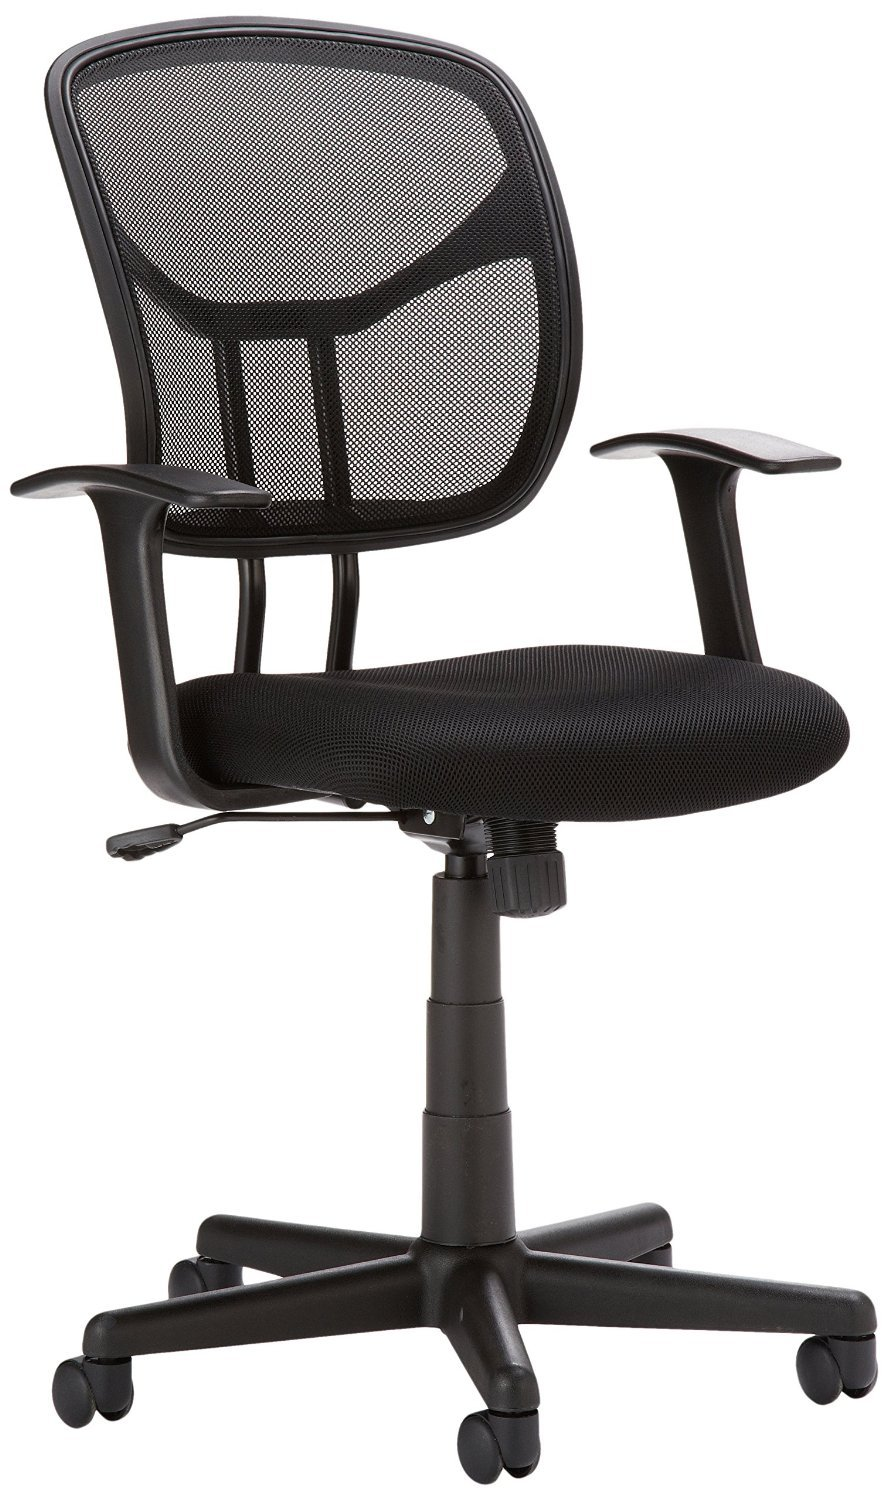 The Best Office Chair 4